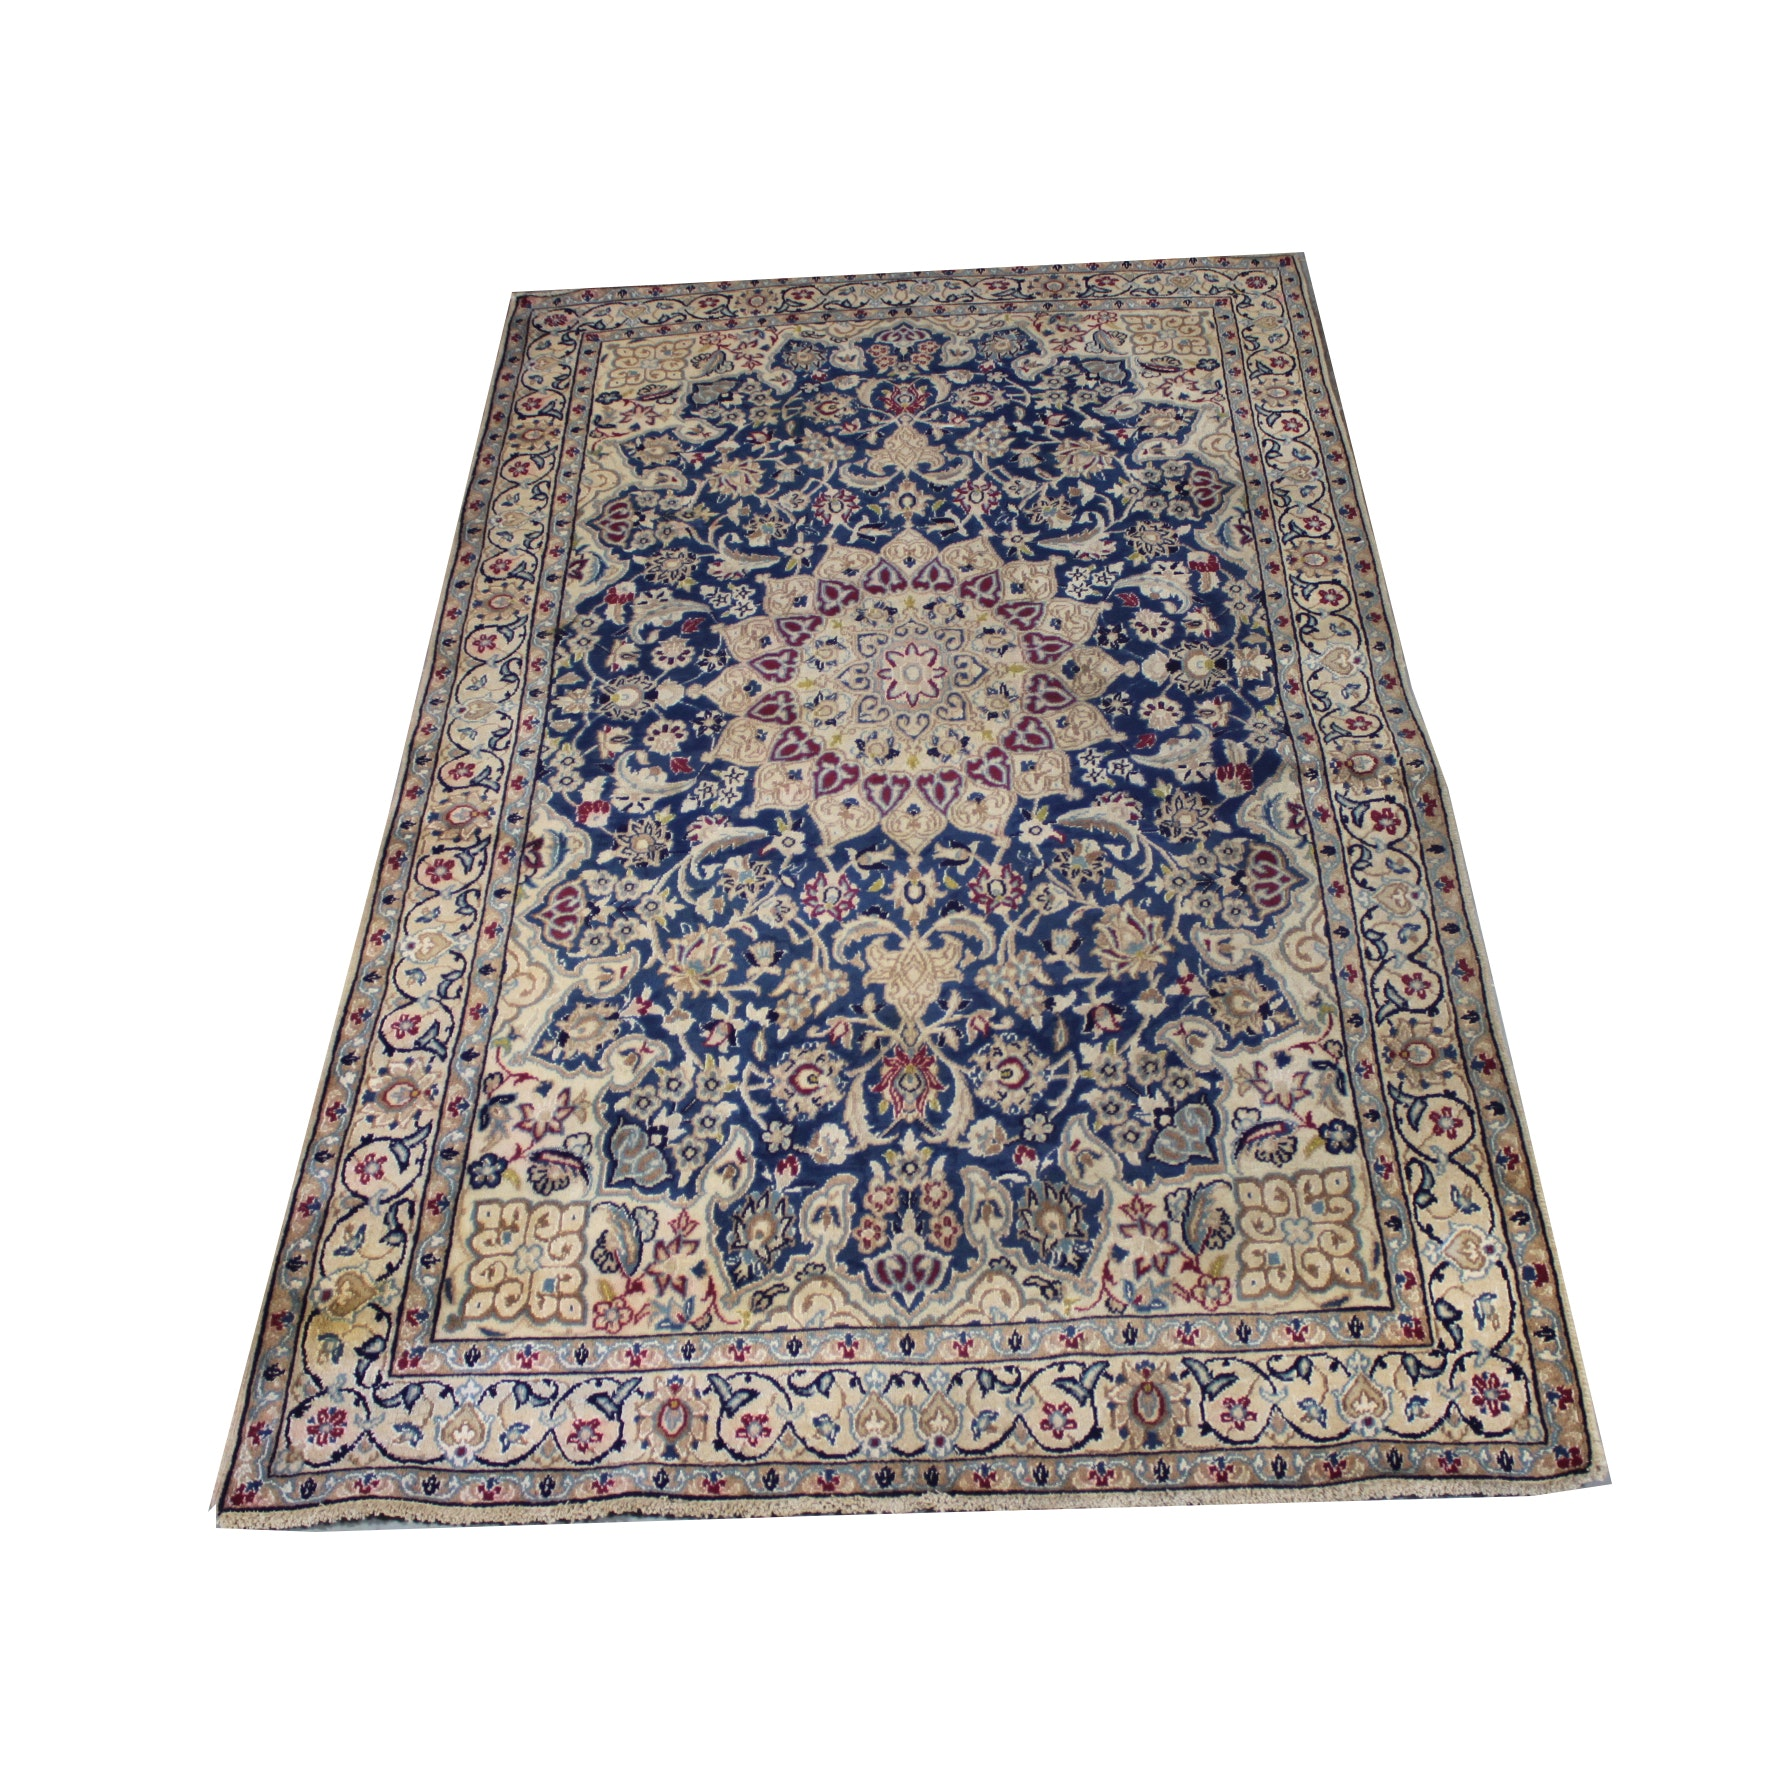 Vintage Hand-Knotted Persian Wool Nain Area Rug with Silk Accents